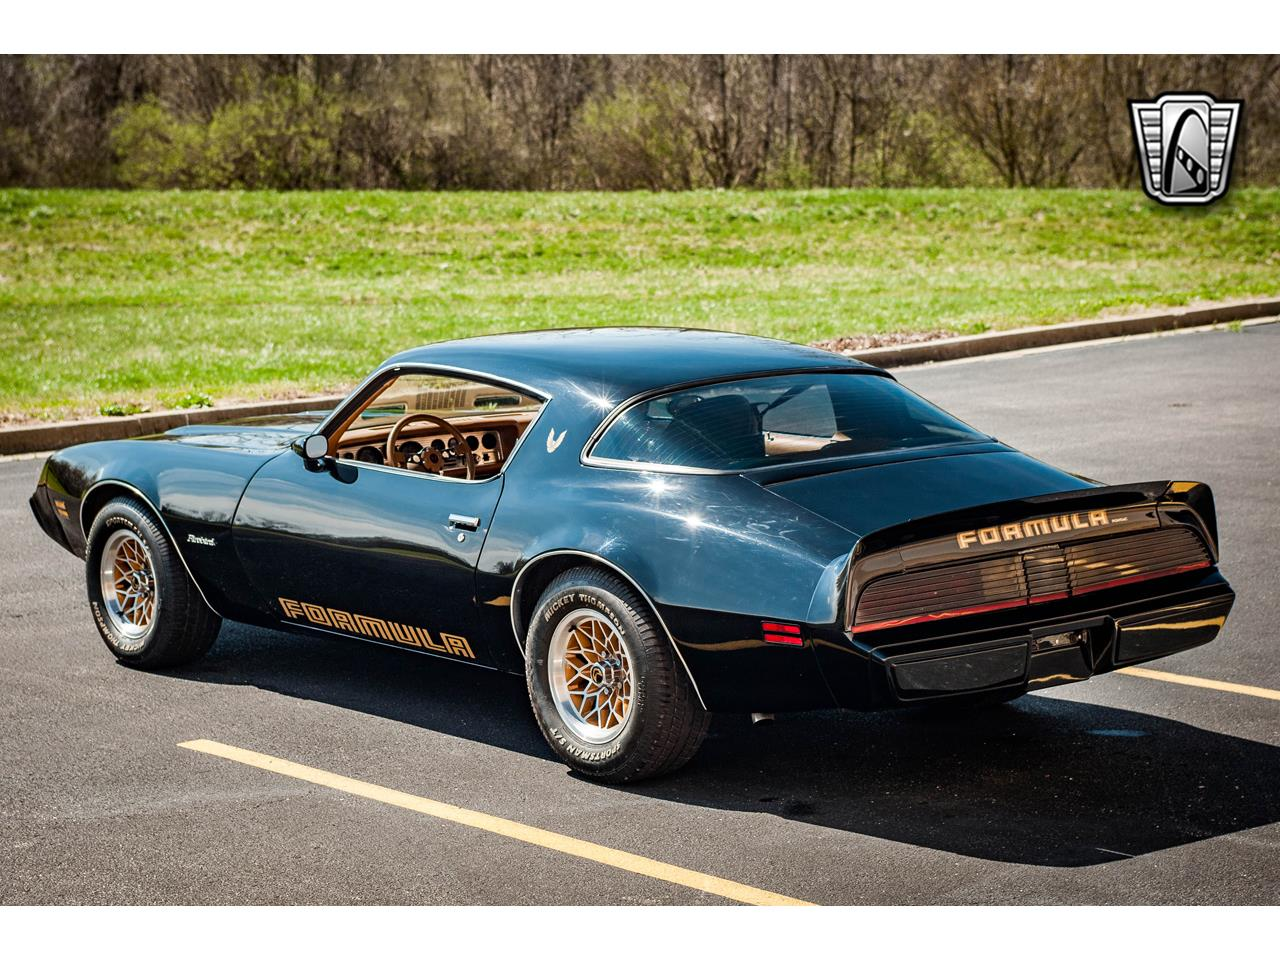 Large Picture of 1979 Pontiac Firebird located in Illinois - $36,500.00 - QB8A